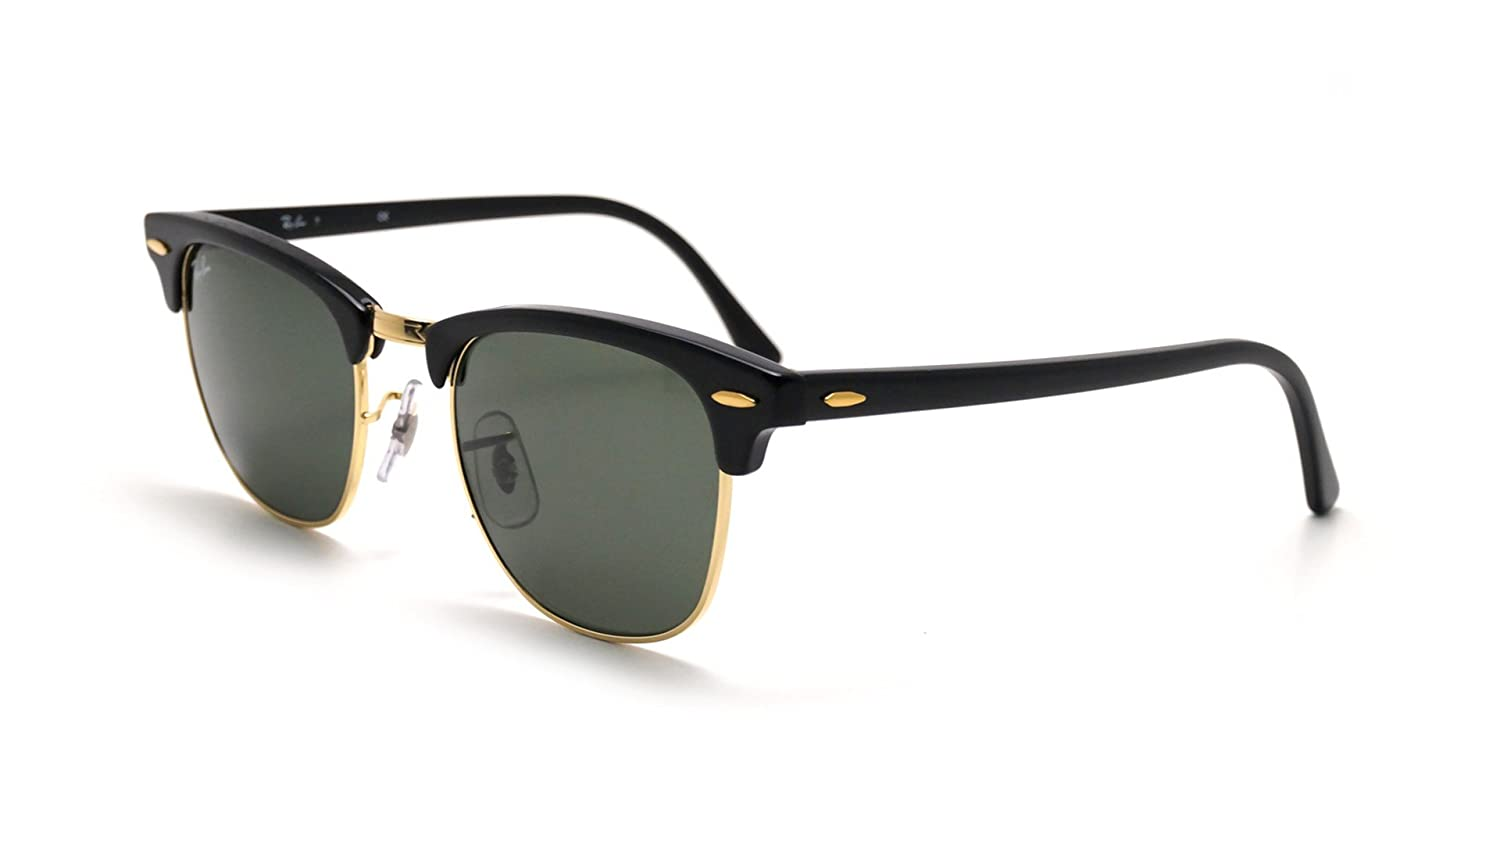 dae2b68c46 Amazon.com  Ray Ban Sunglasses Clubmaster RB3016 W0365 Ebony Black Arista  Gold Crystal Green